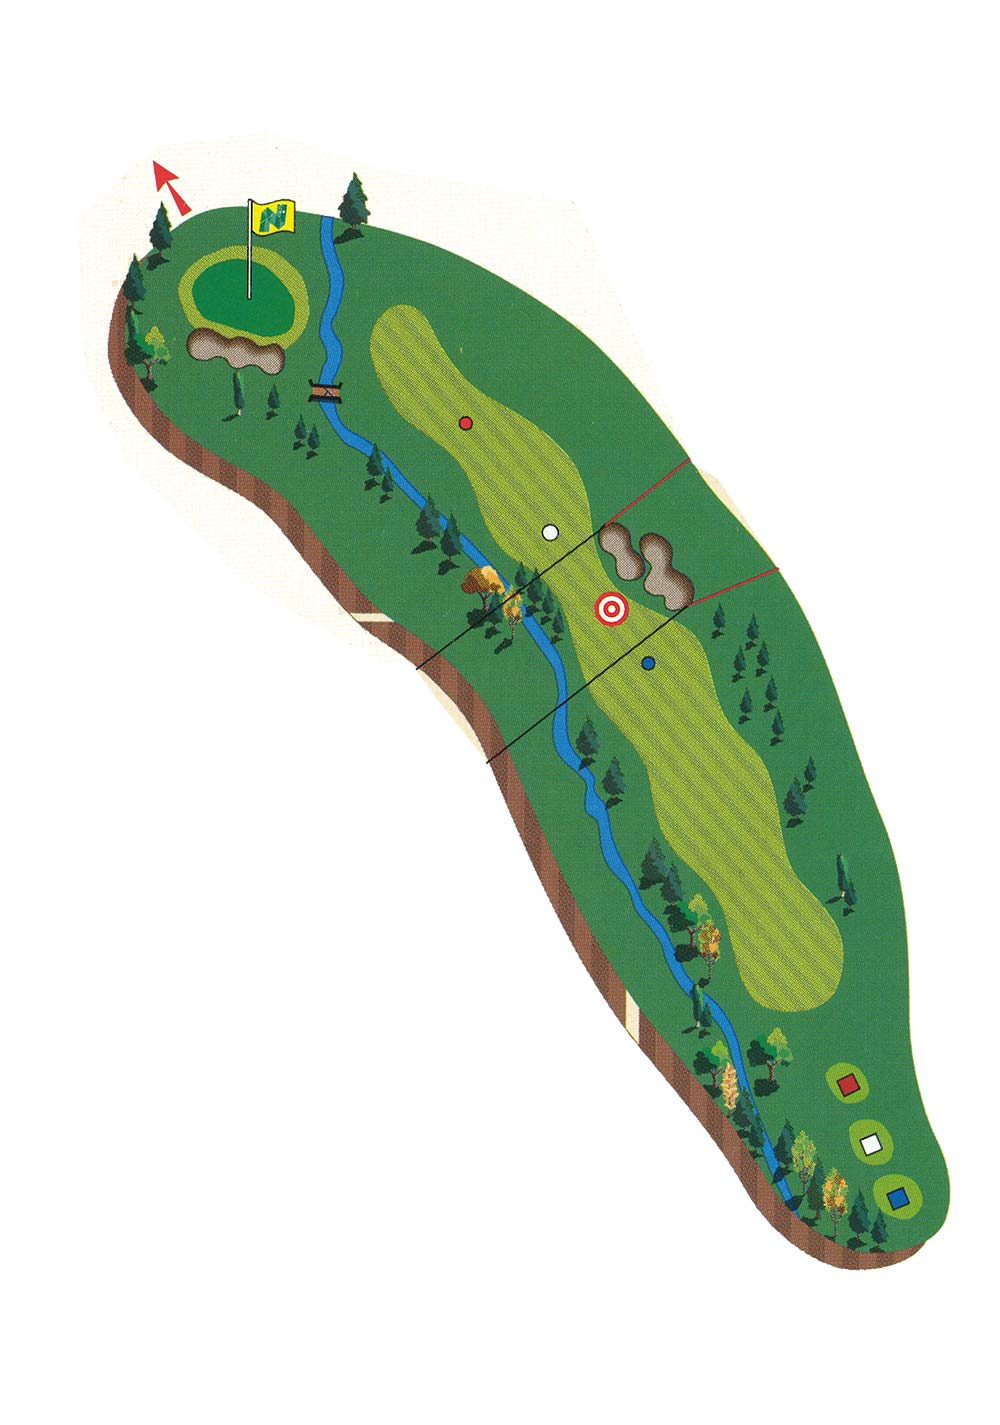 NS Course Description - Hole 16